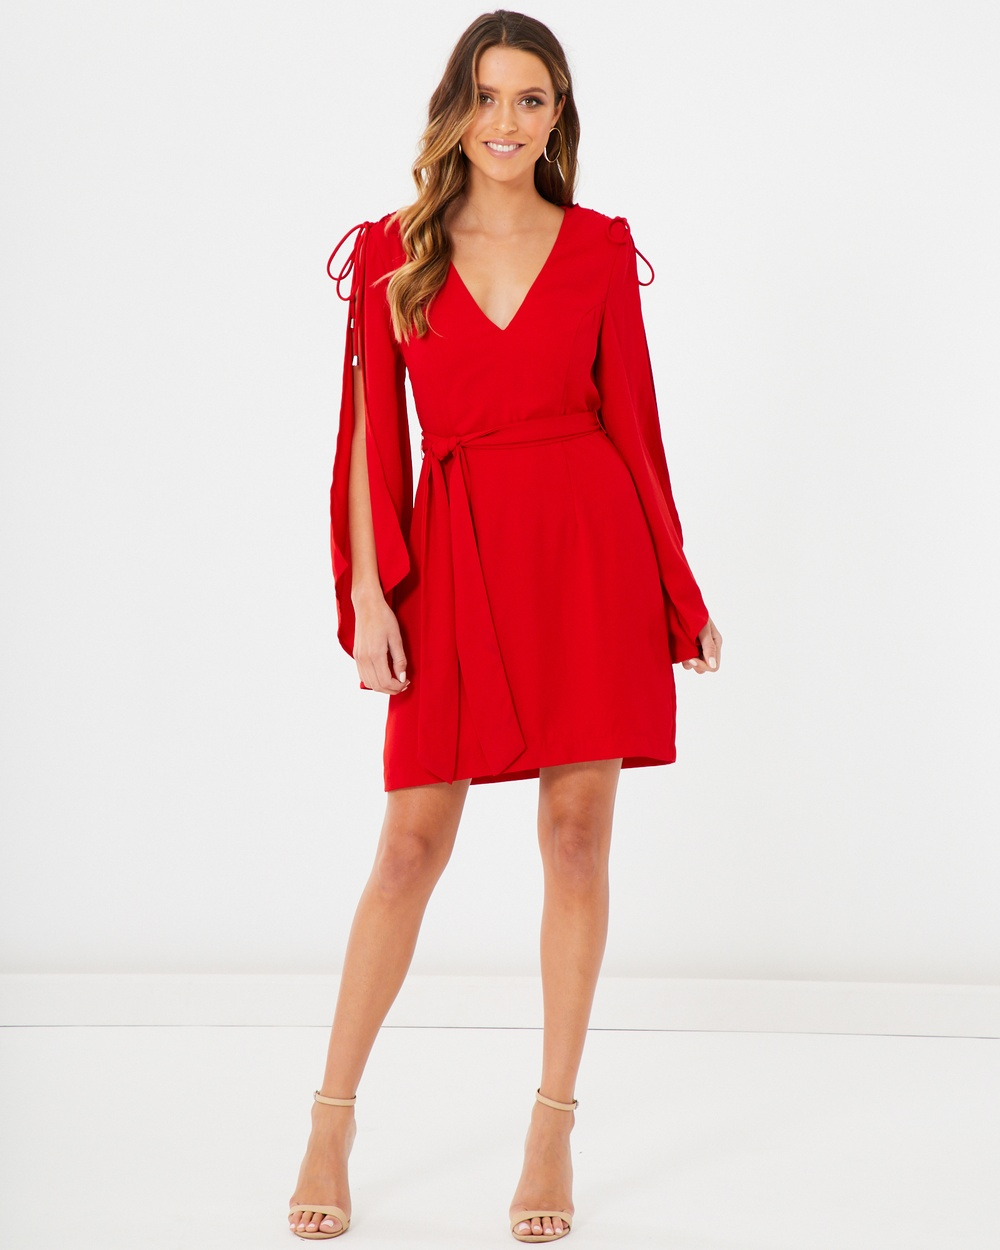 Photo of Tussah Red Amber Mini Dress - beautiful dress from Tussah online